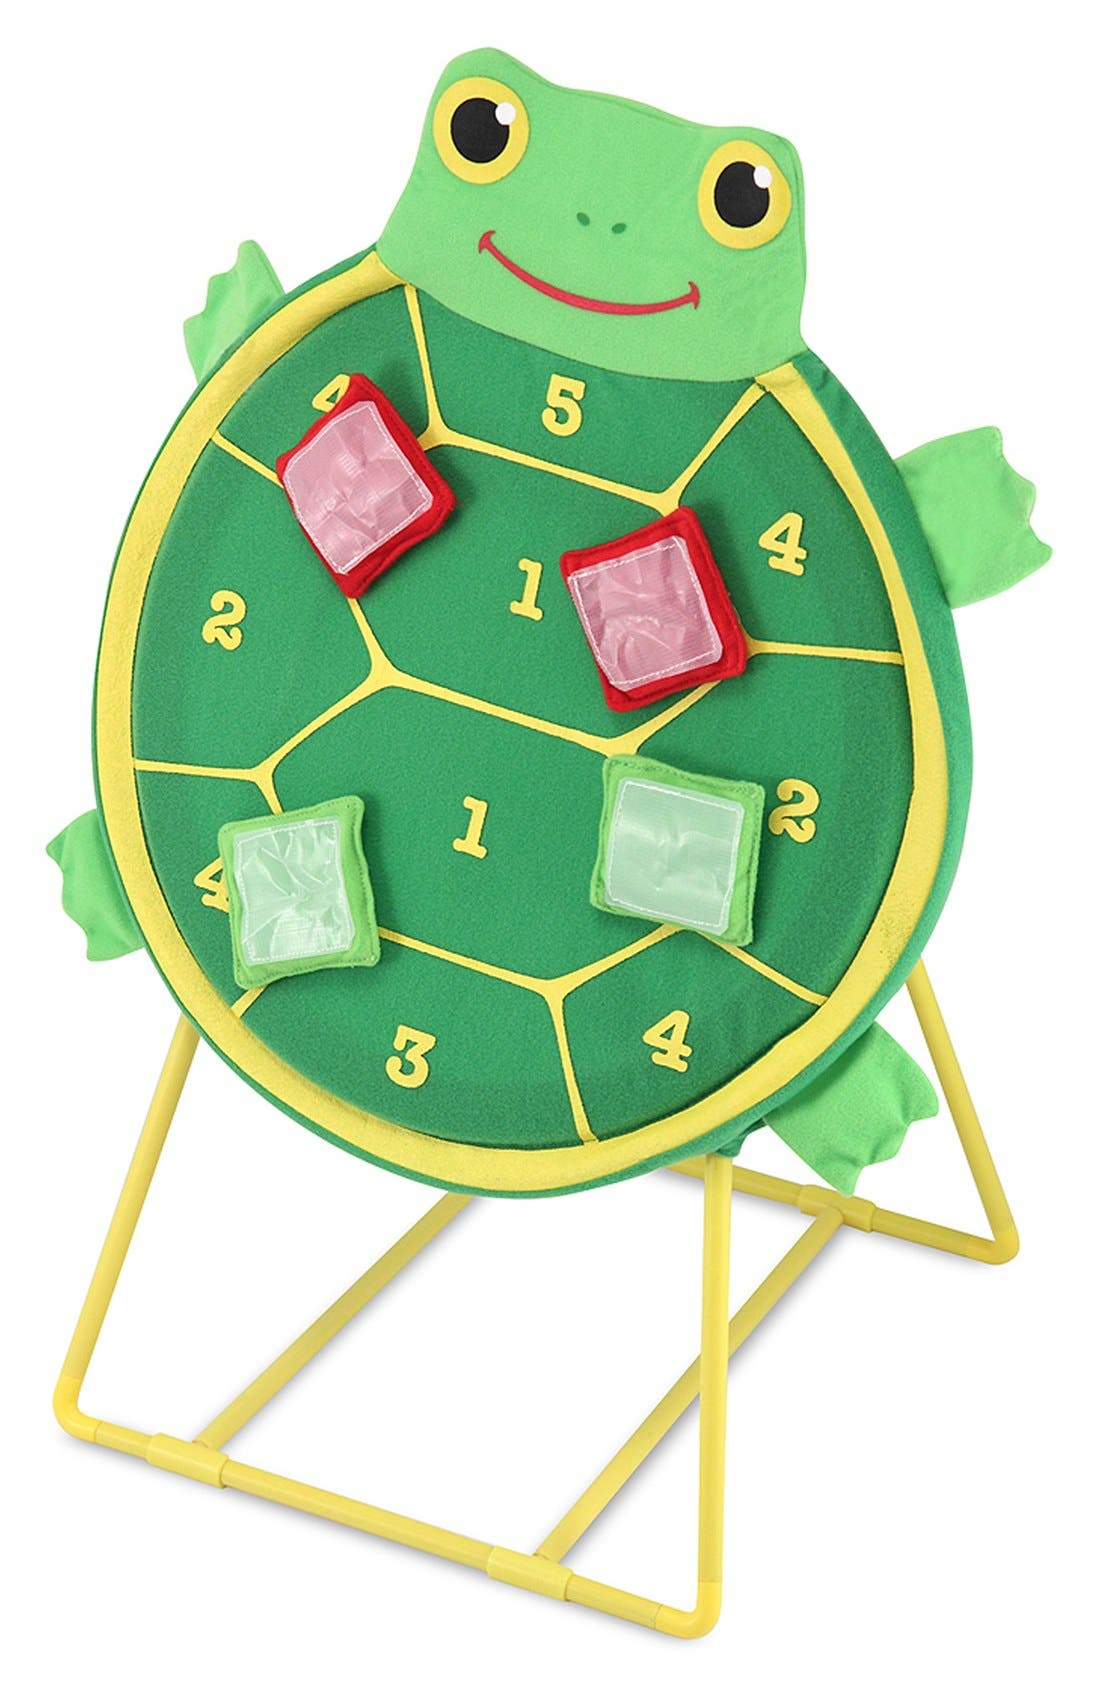 'Tootle Turtle' Target Game,                             Main thumbnail 1, color,                             Green